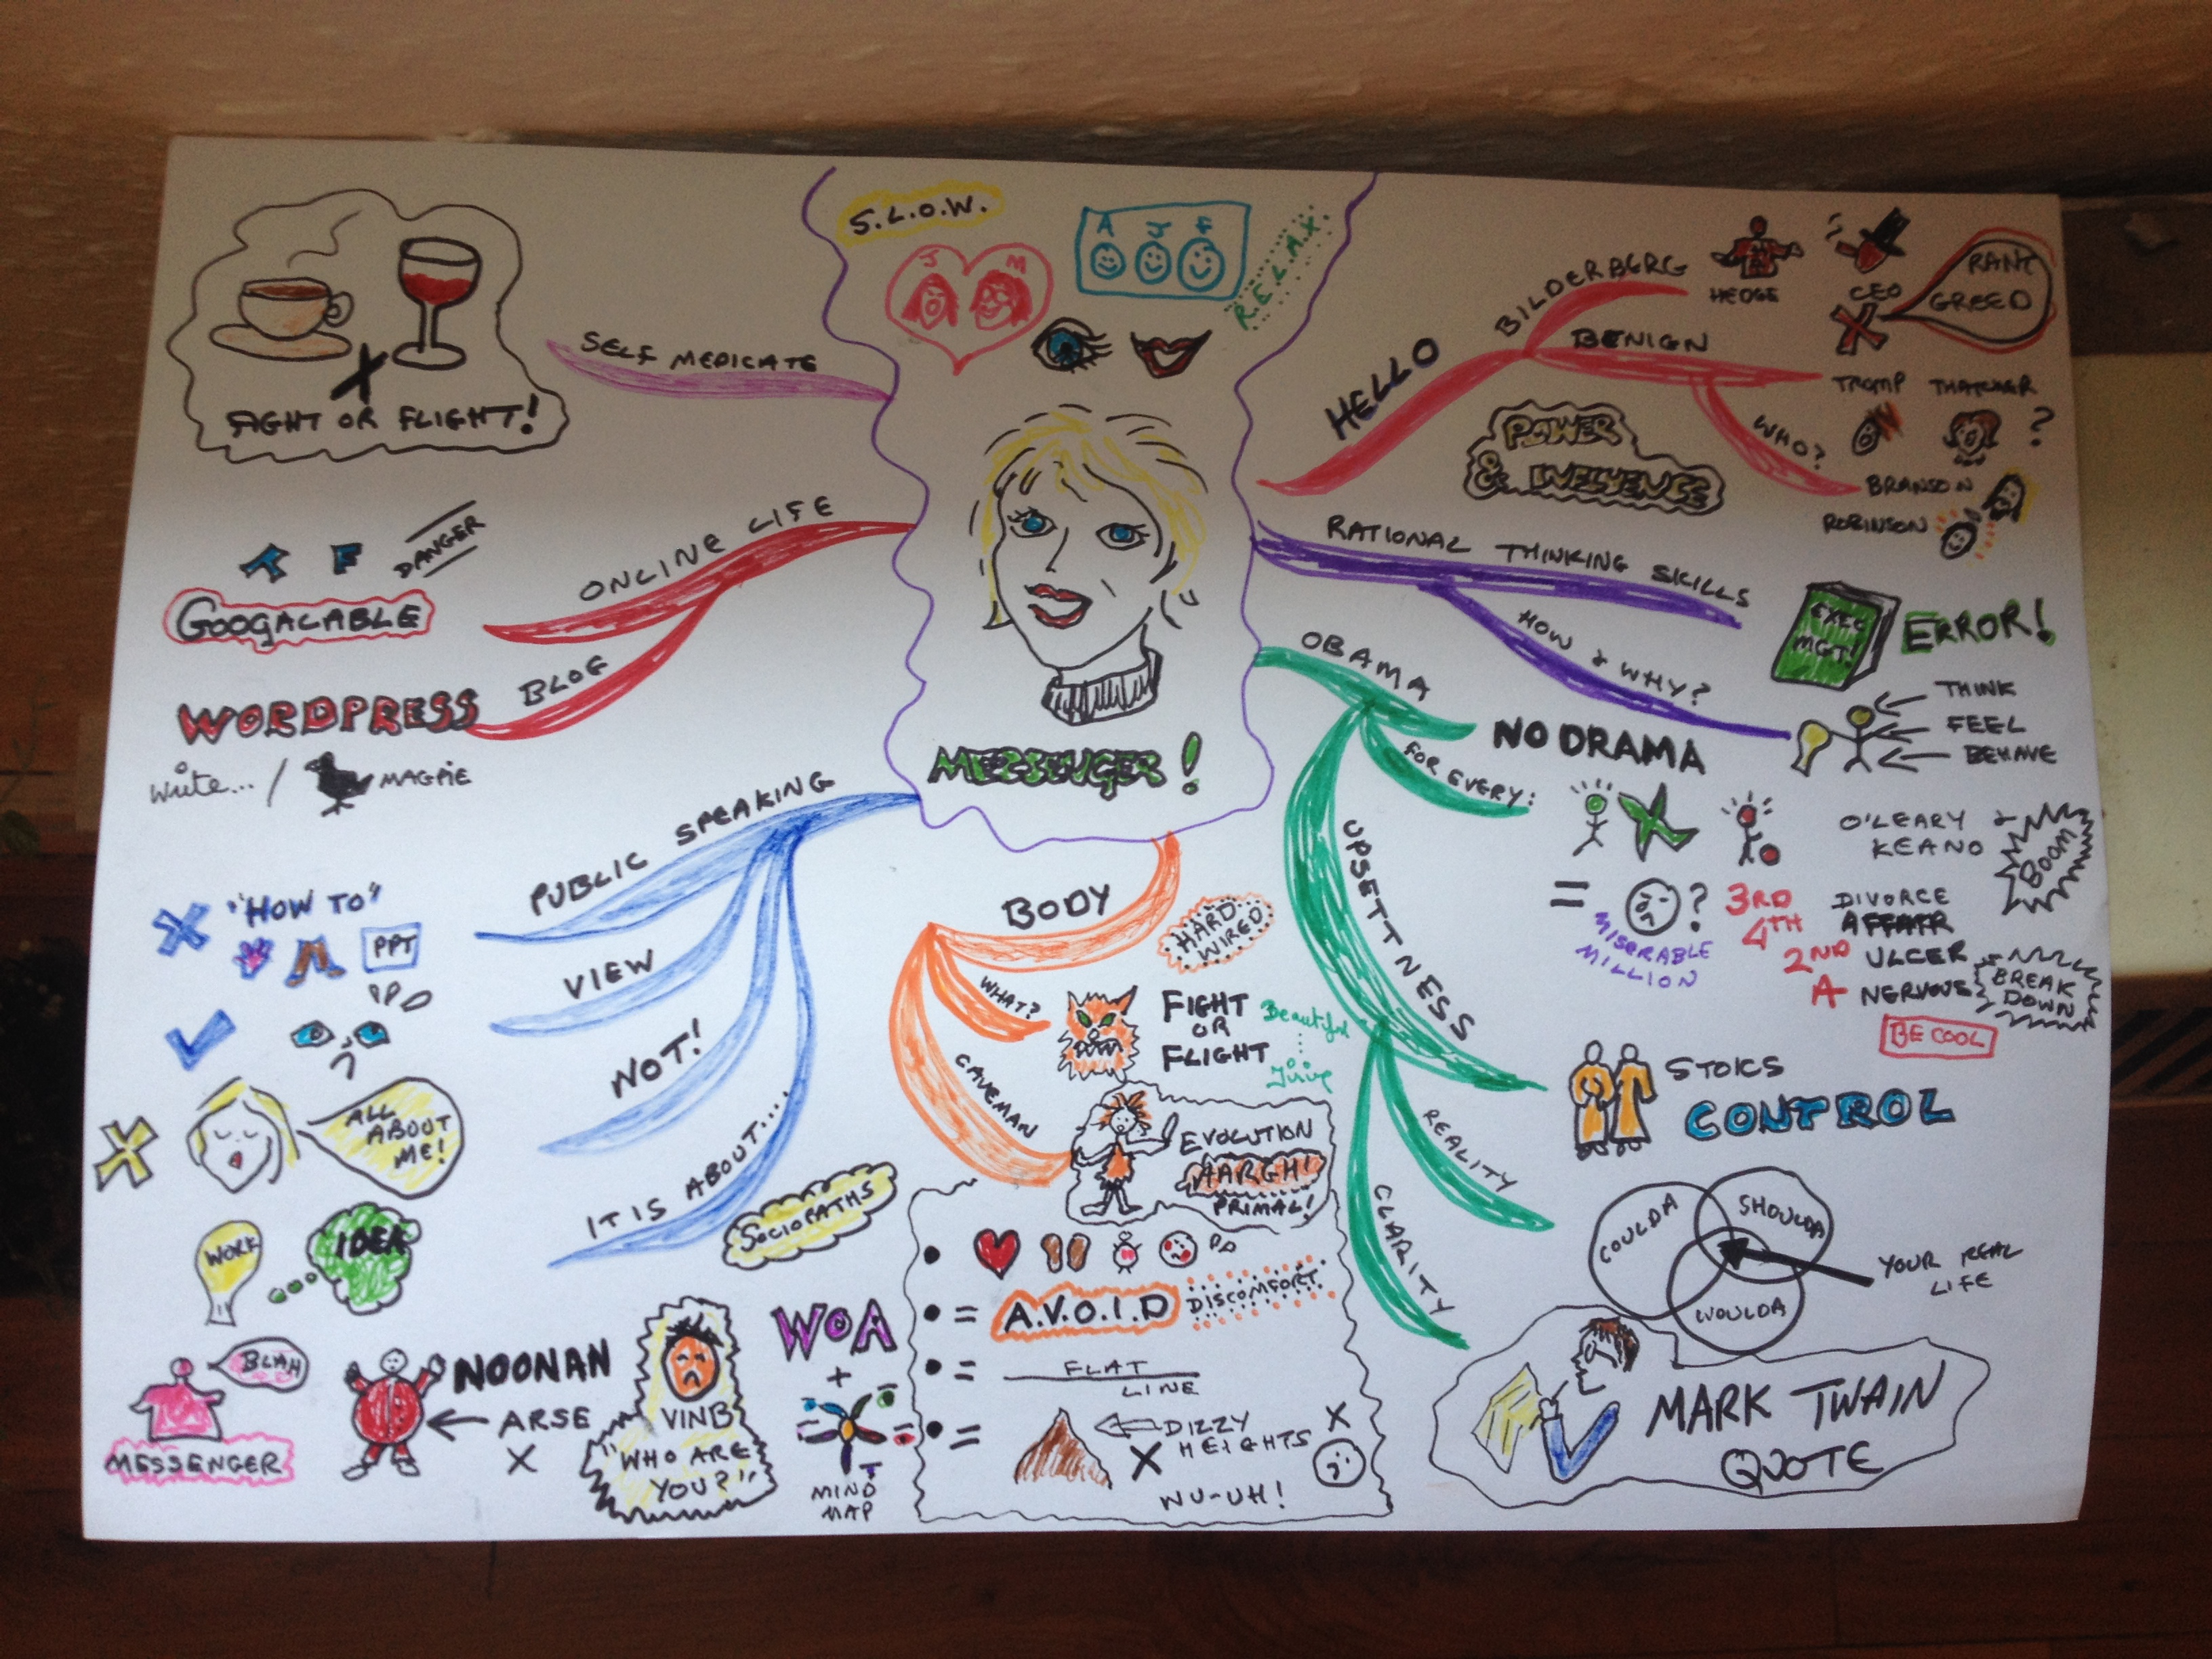 The Mind Map For The Ncirl 7 Deadly Sins Speaking Event